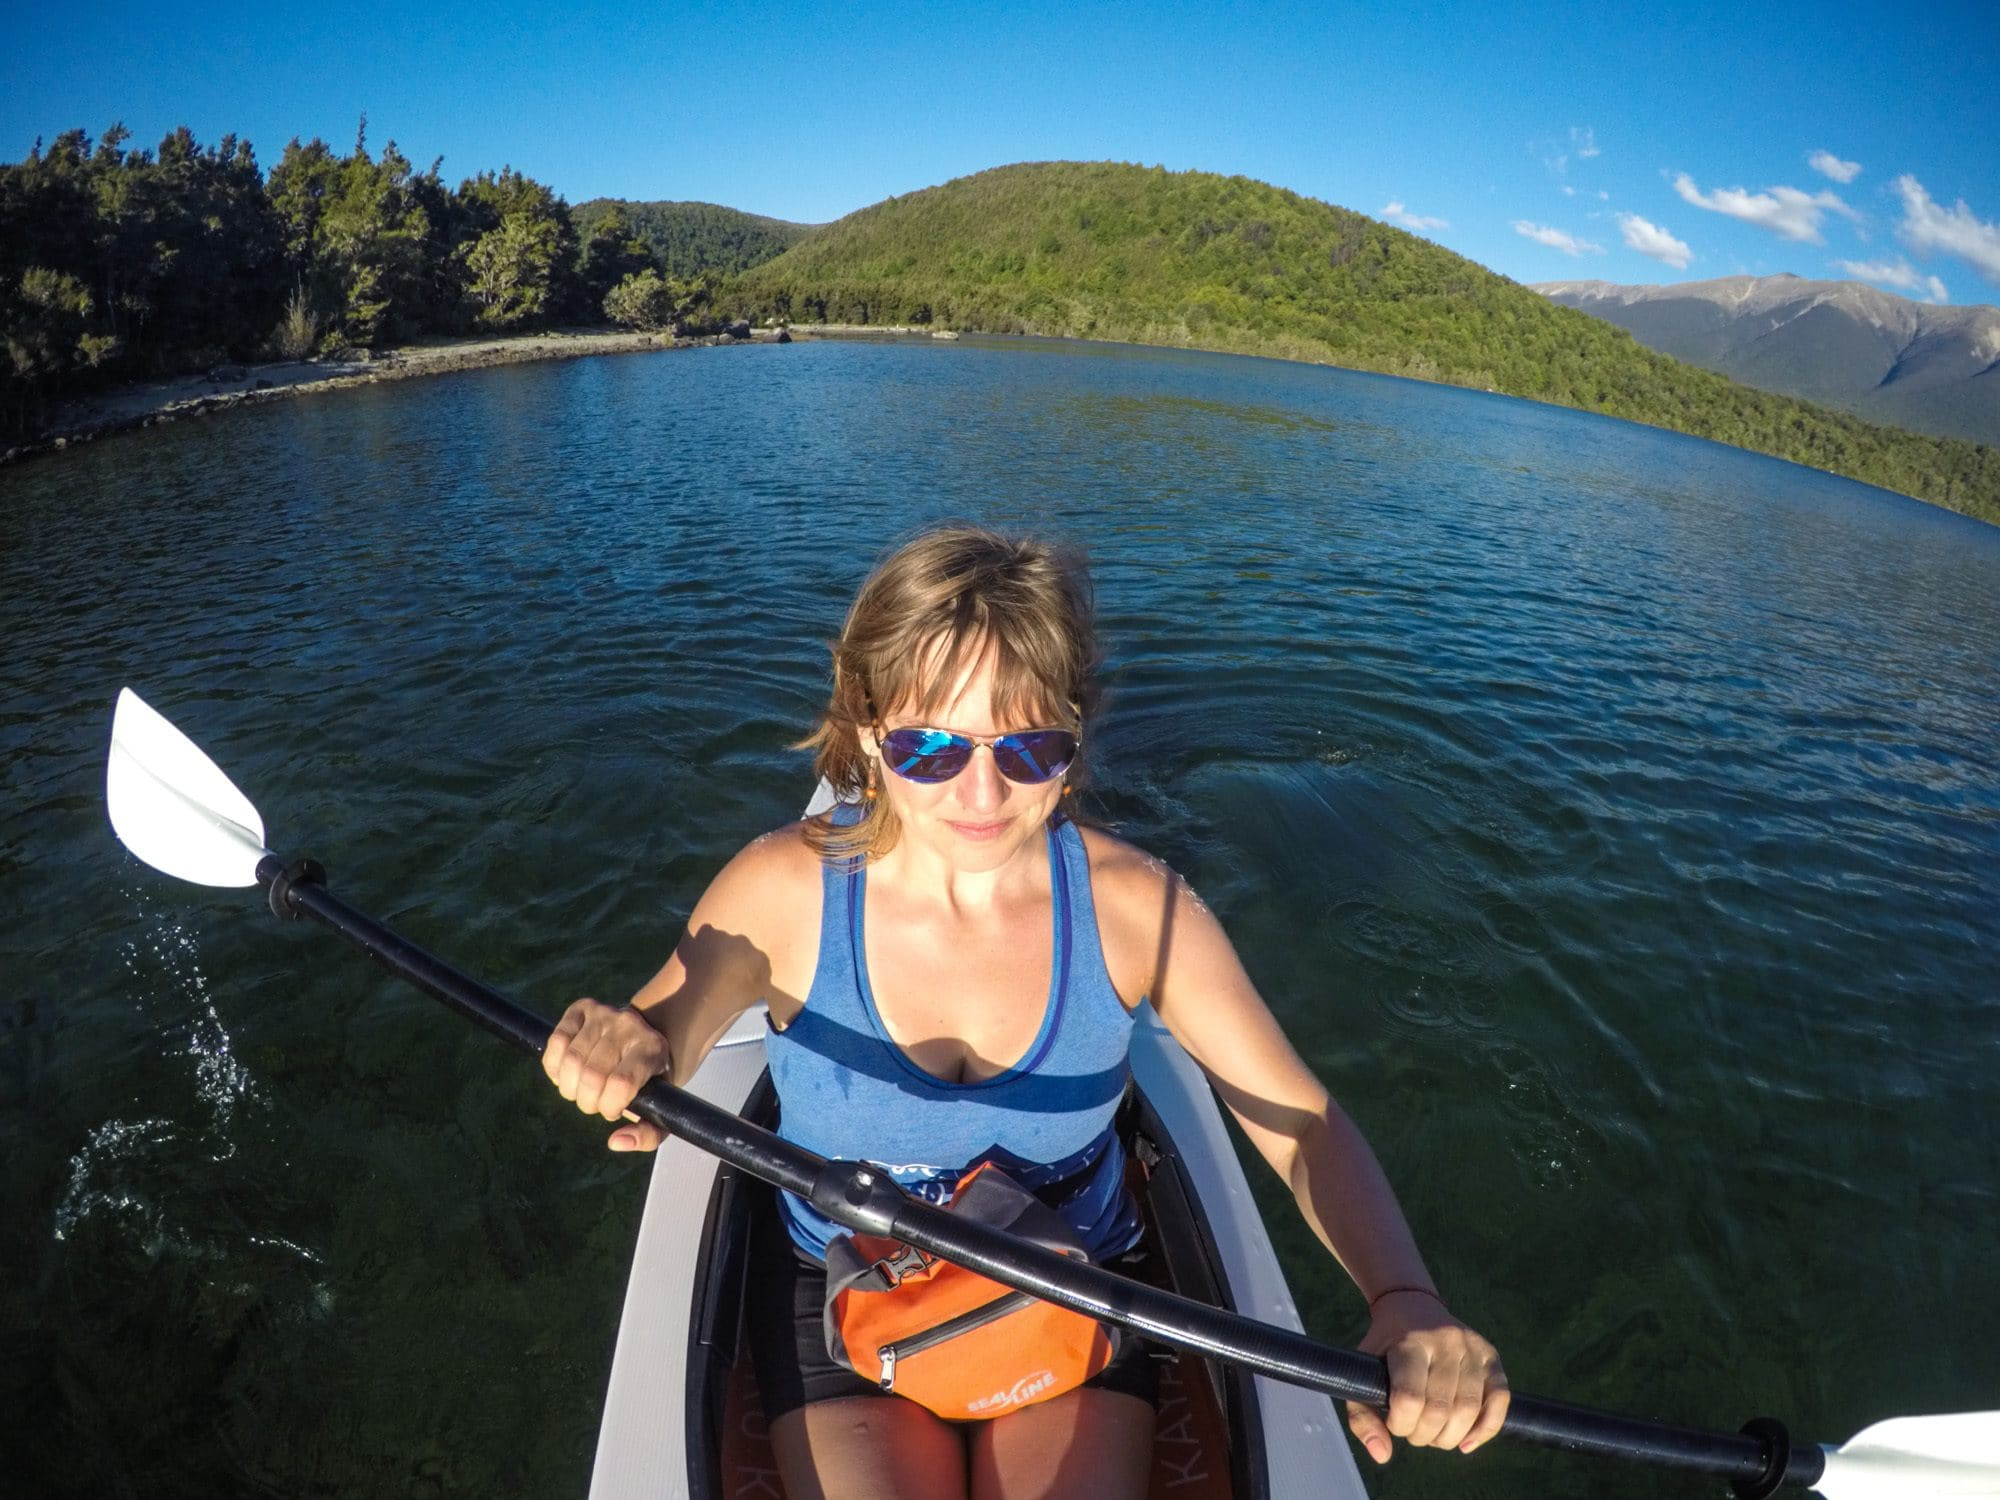 How to paddle a kayak // Sit-on top vs Sit-in Kayaks // Build confidence with these kayaking tips for beginners. Learn about different types of kayaks, what to wear, how to paddle & trip planning considerations.